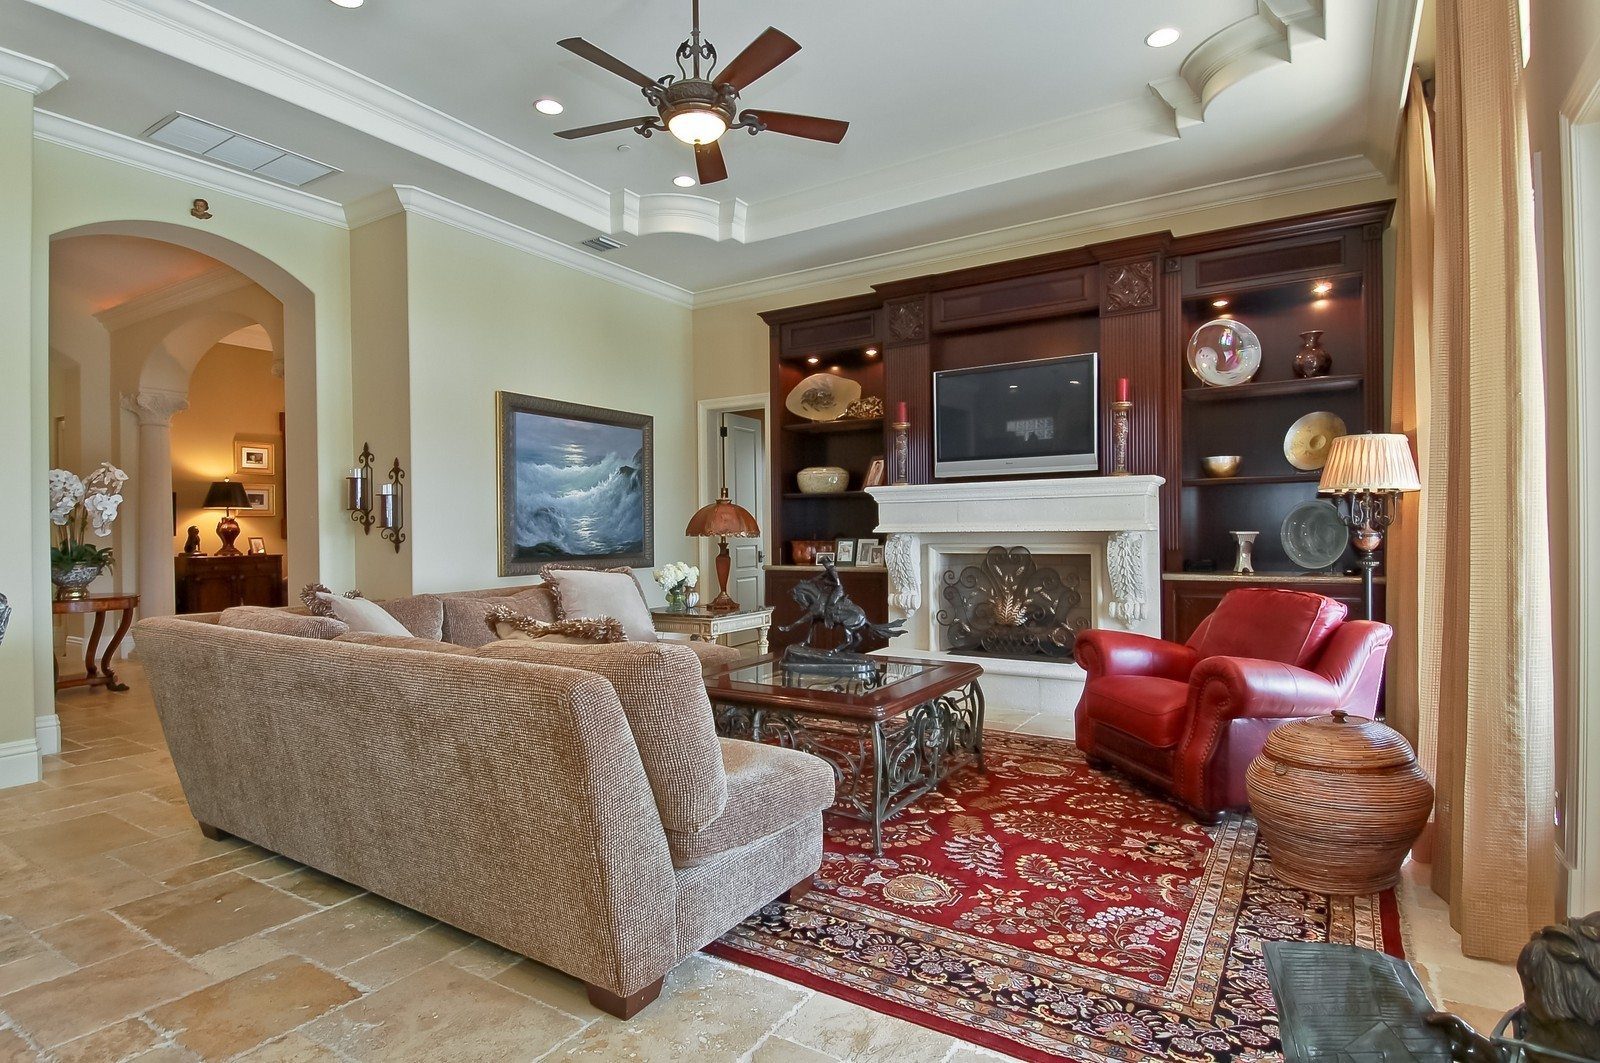 Real Estate Photography - 4022 S Ocean Blvd, Highland Beach, FL, 33487 - Family Room